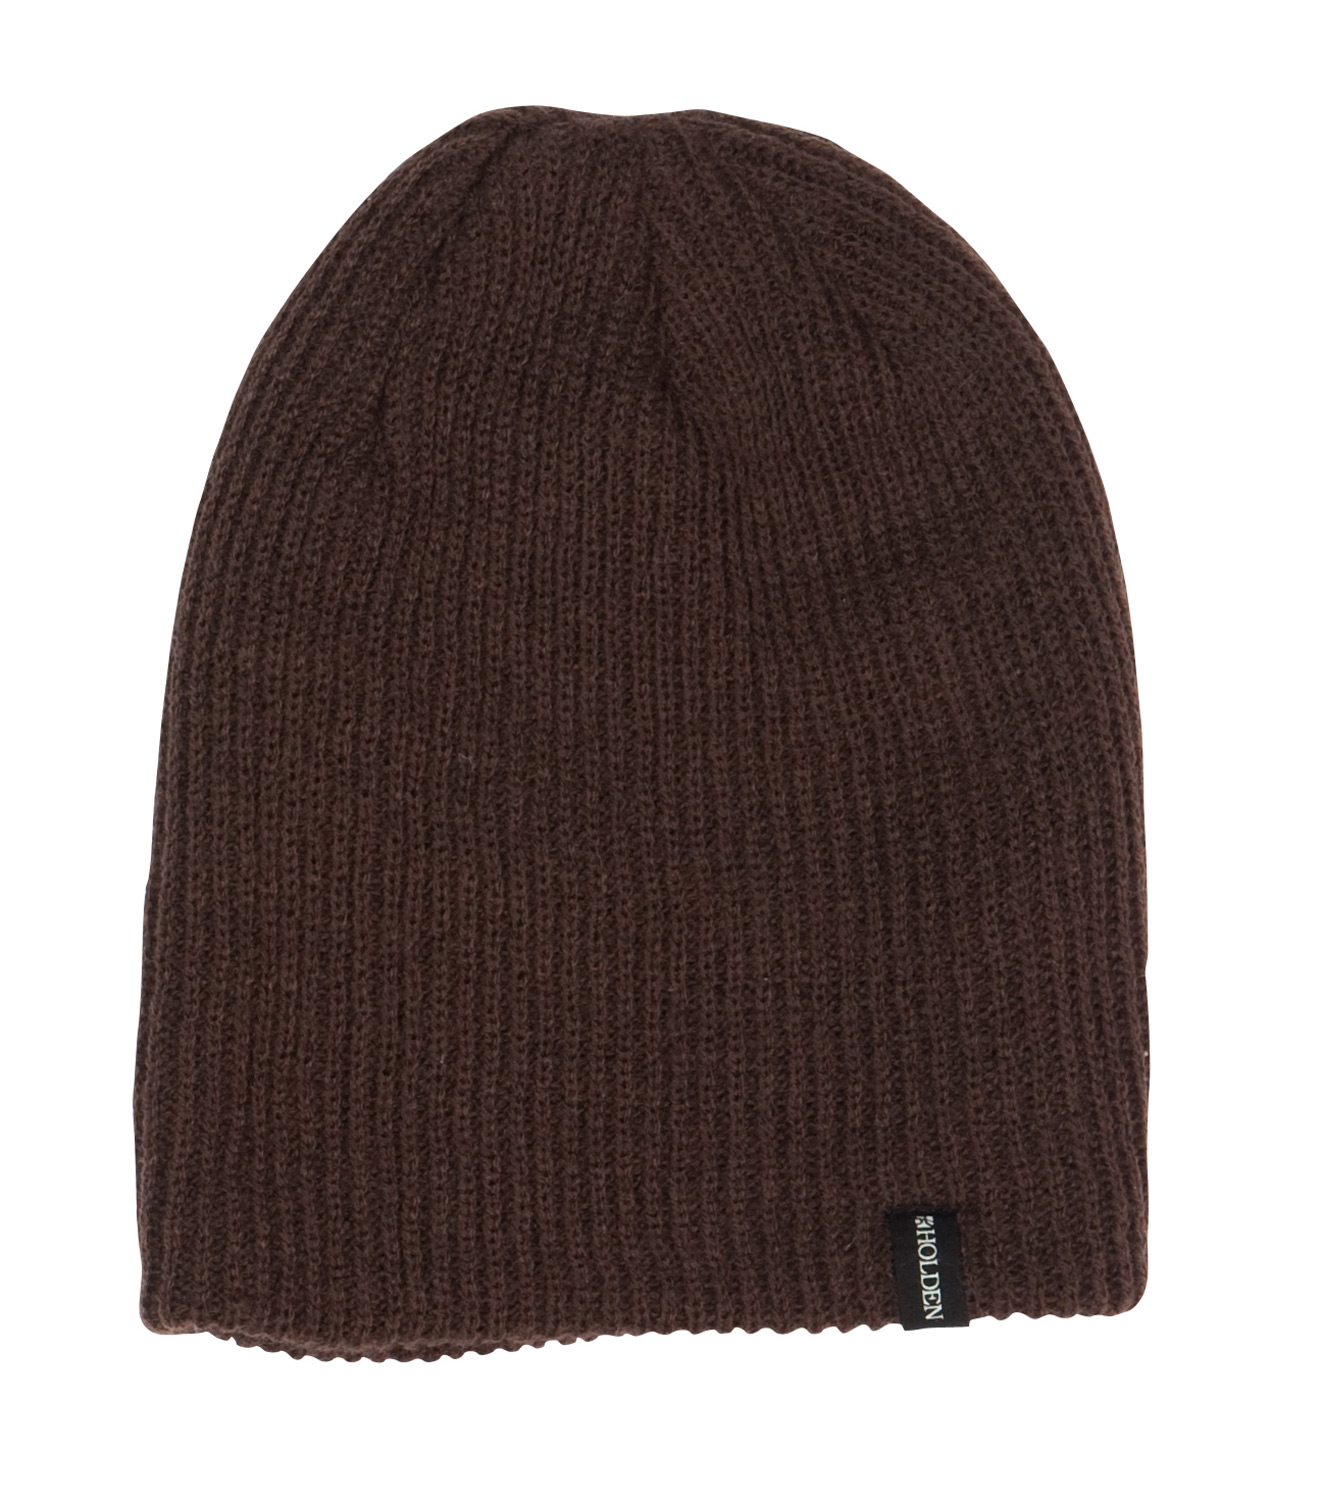 Holden The Classic Beanie - $9.95